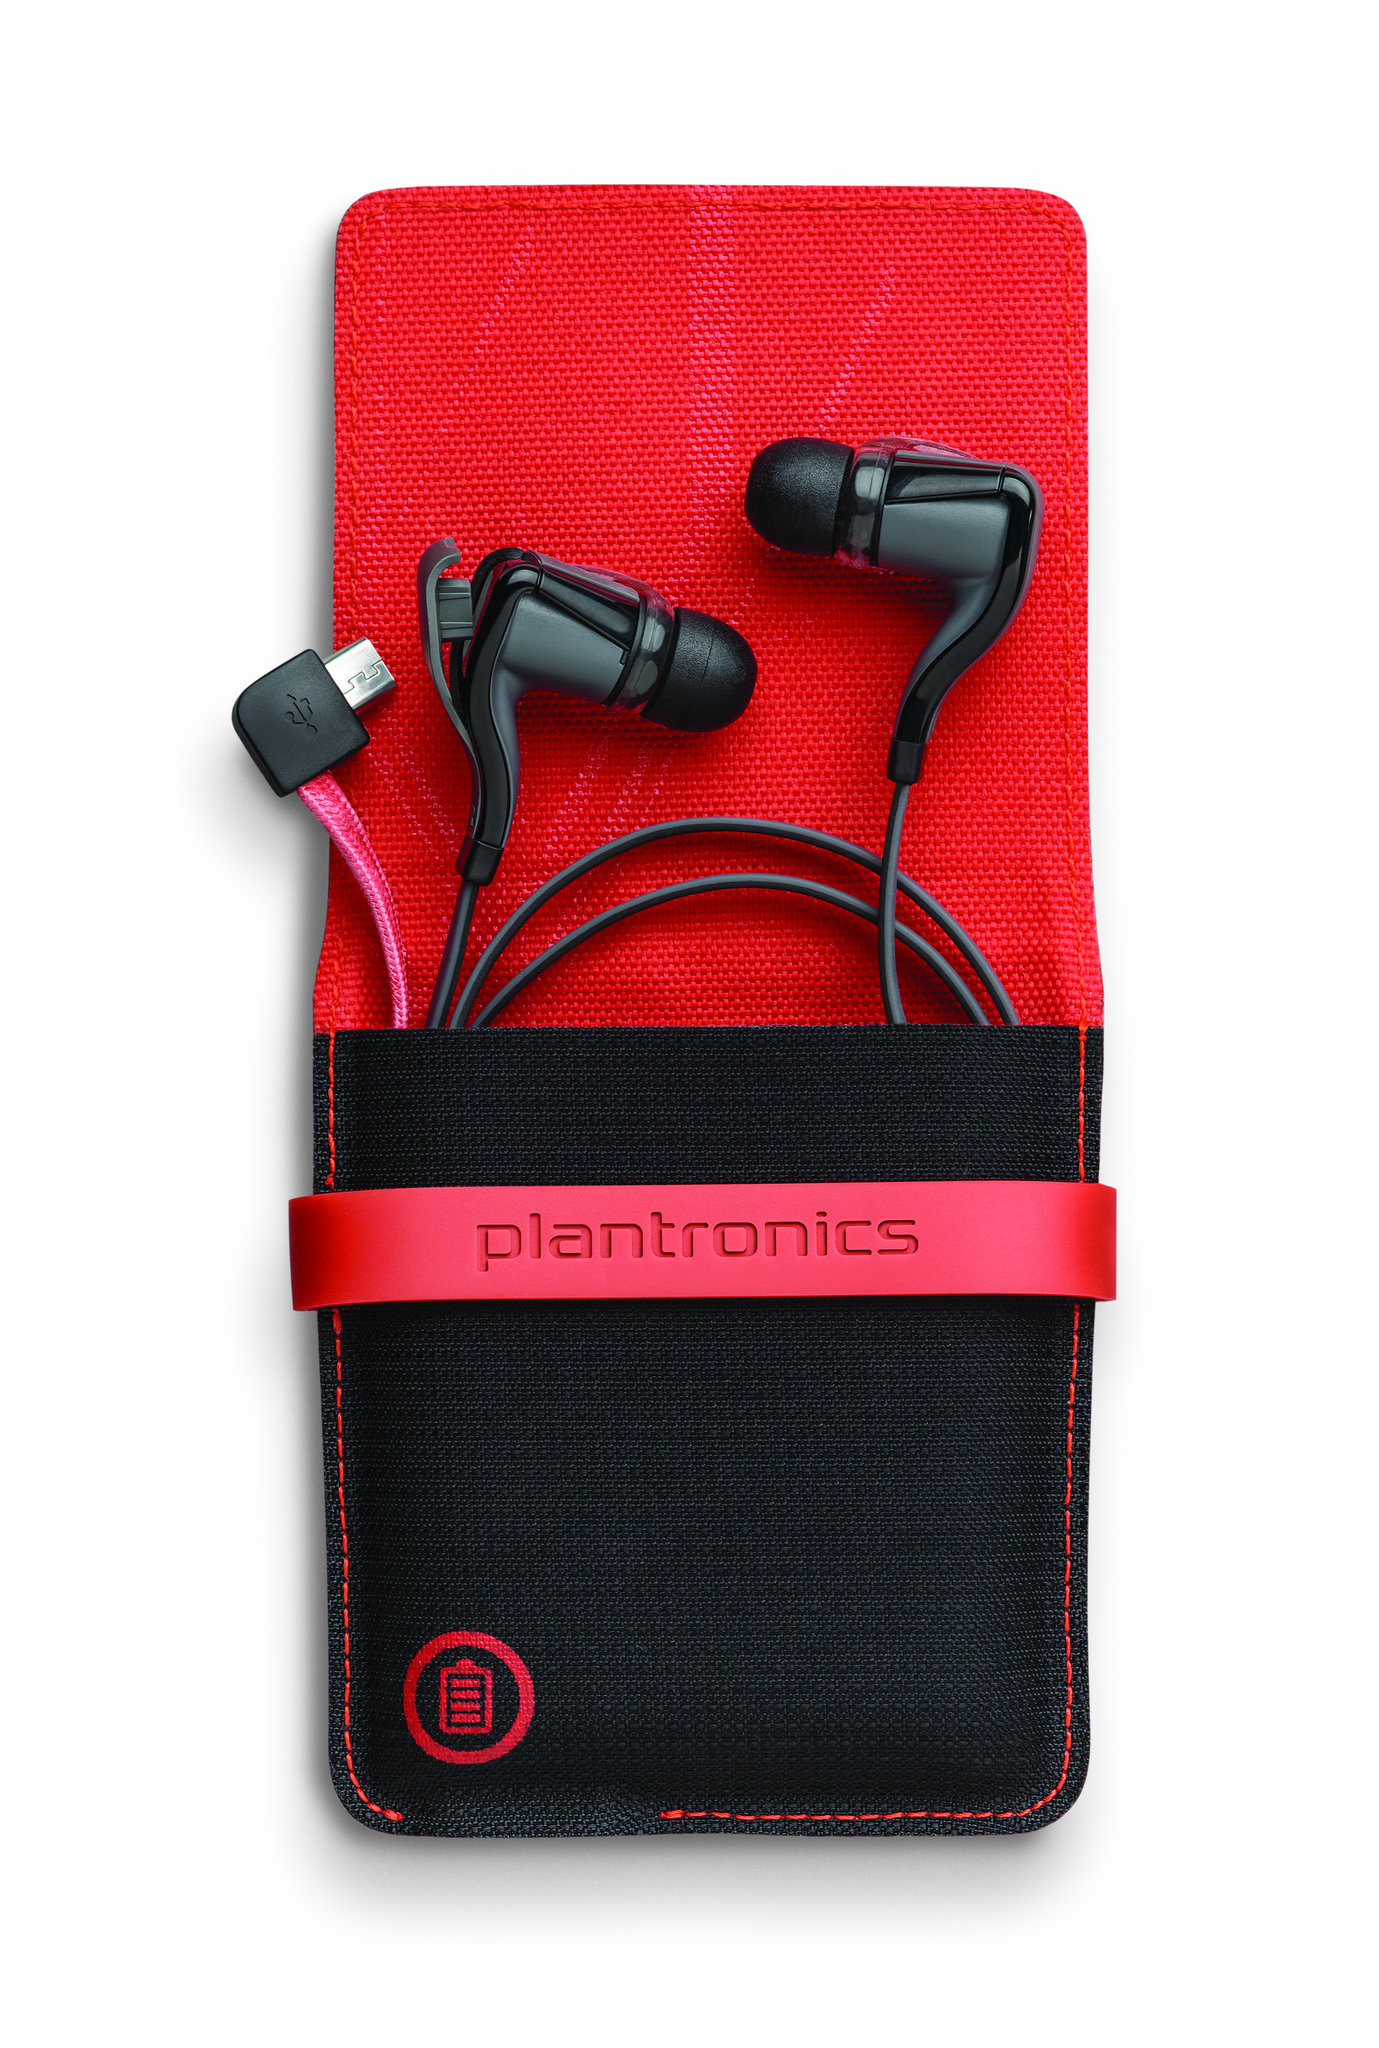 [Test Intra] Plantronics BackBeat Go 2